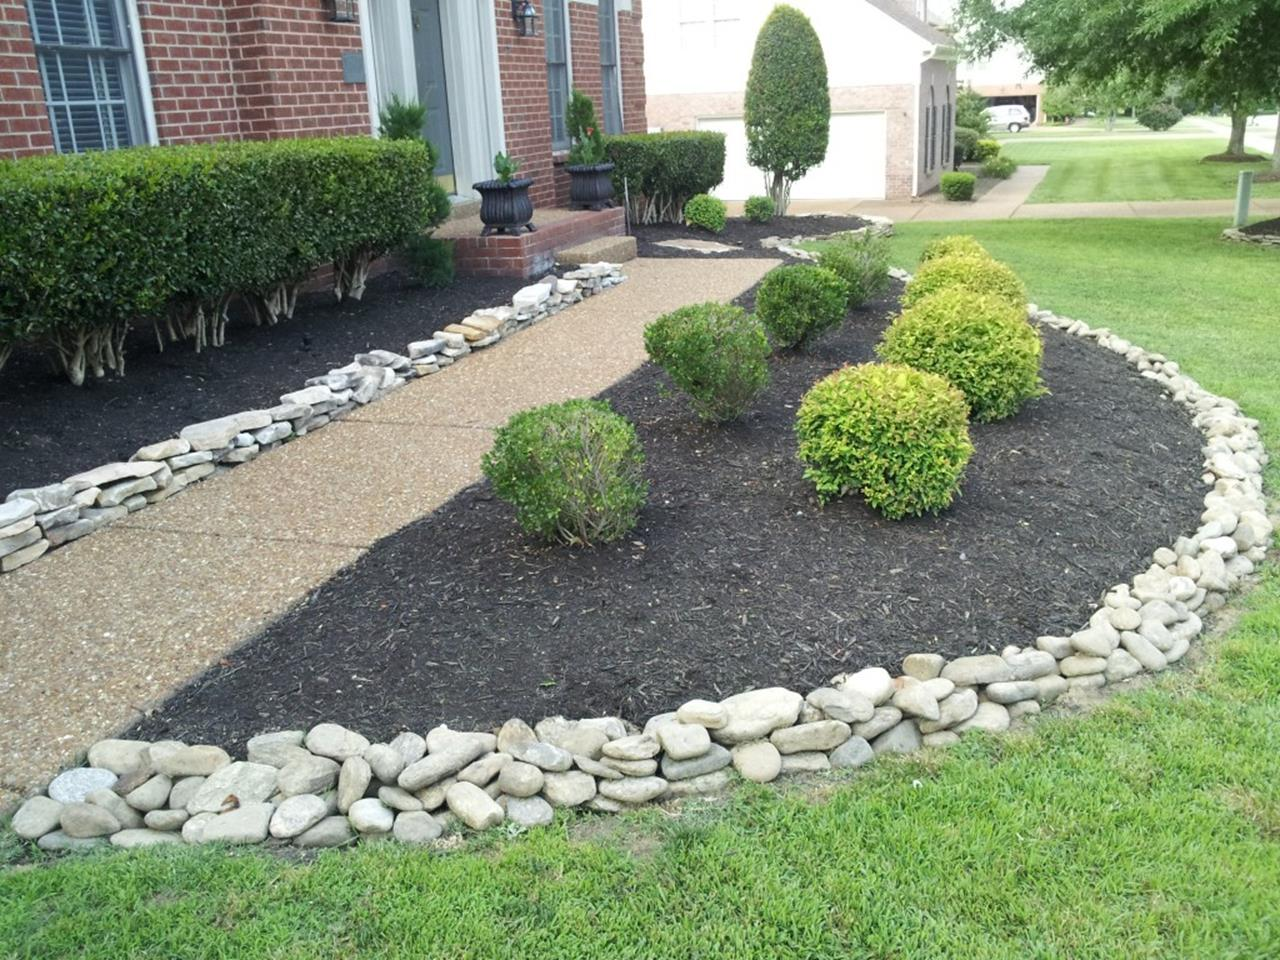 35 Cheap Landscaping Ideas With Rocks And Mulch Gongetech